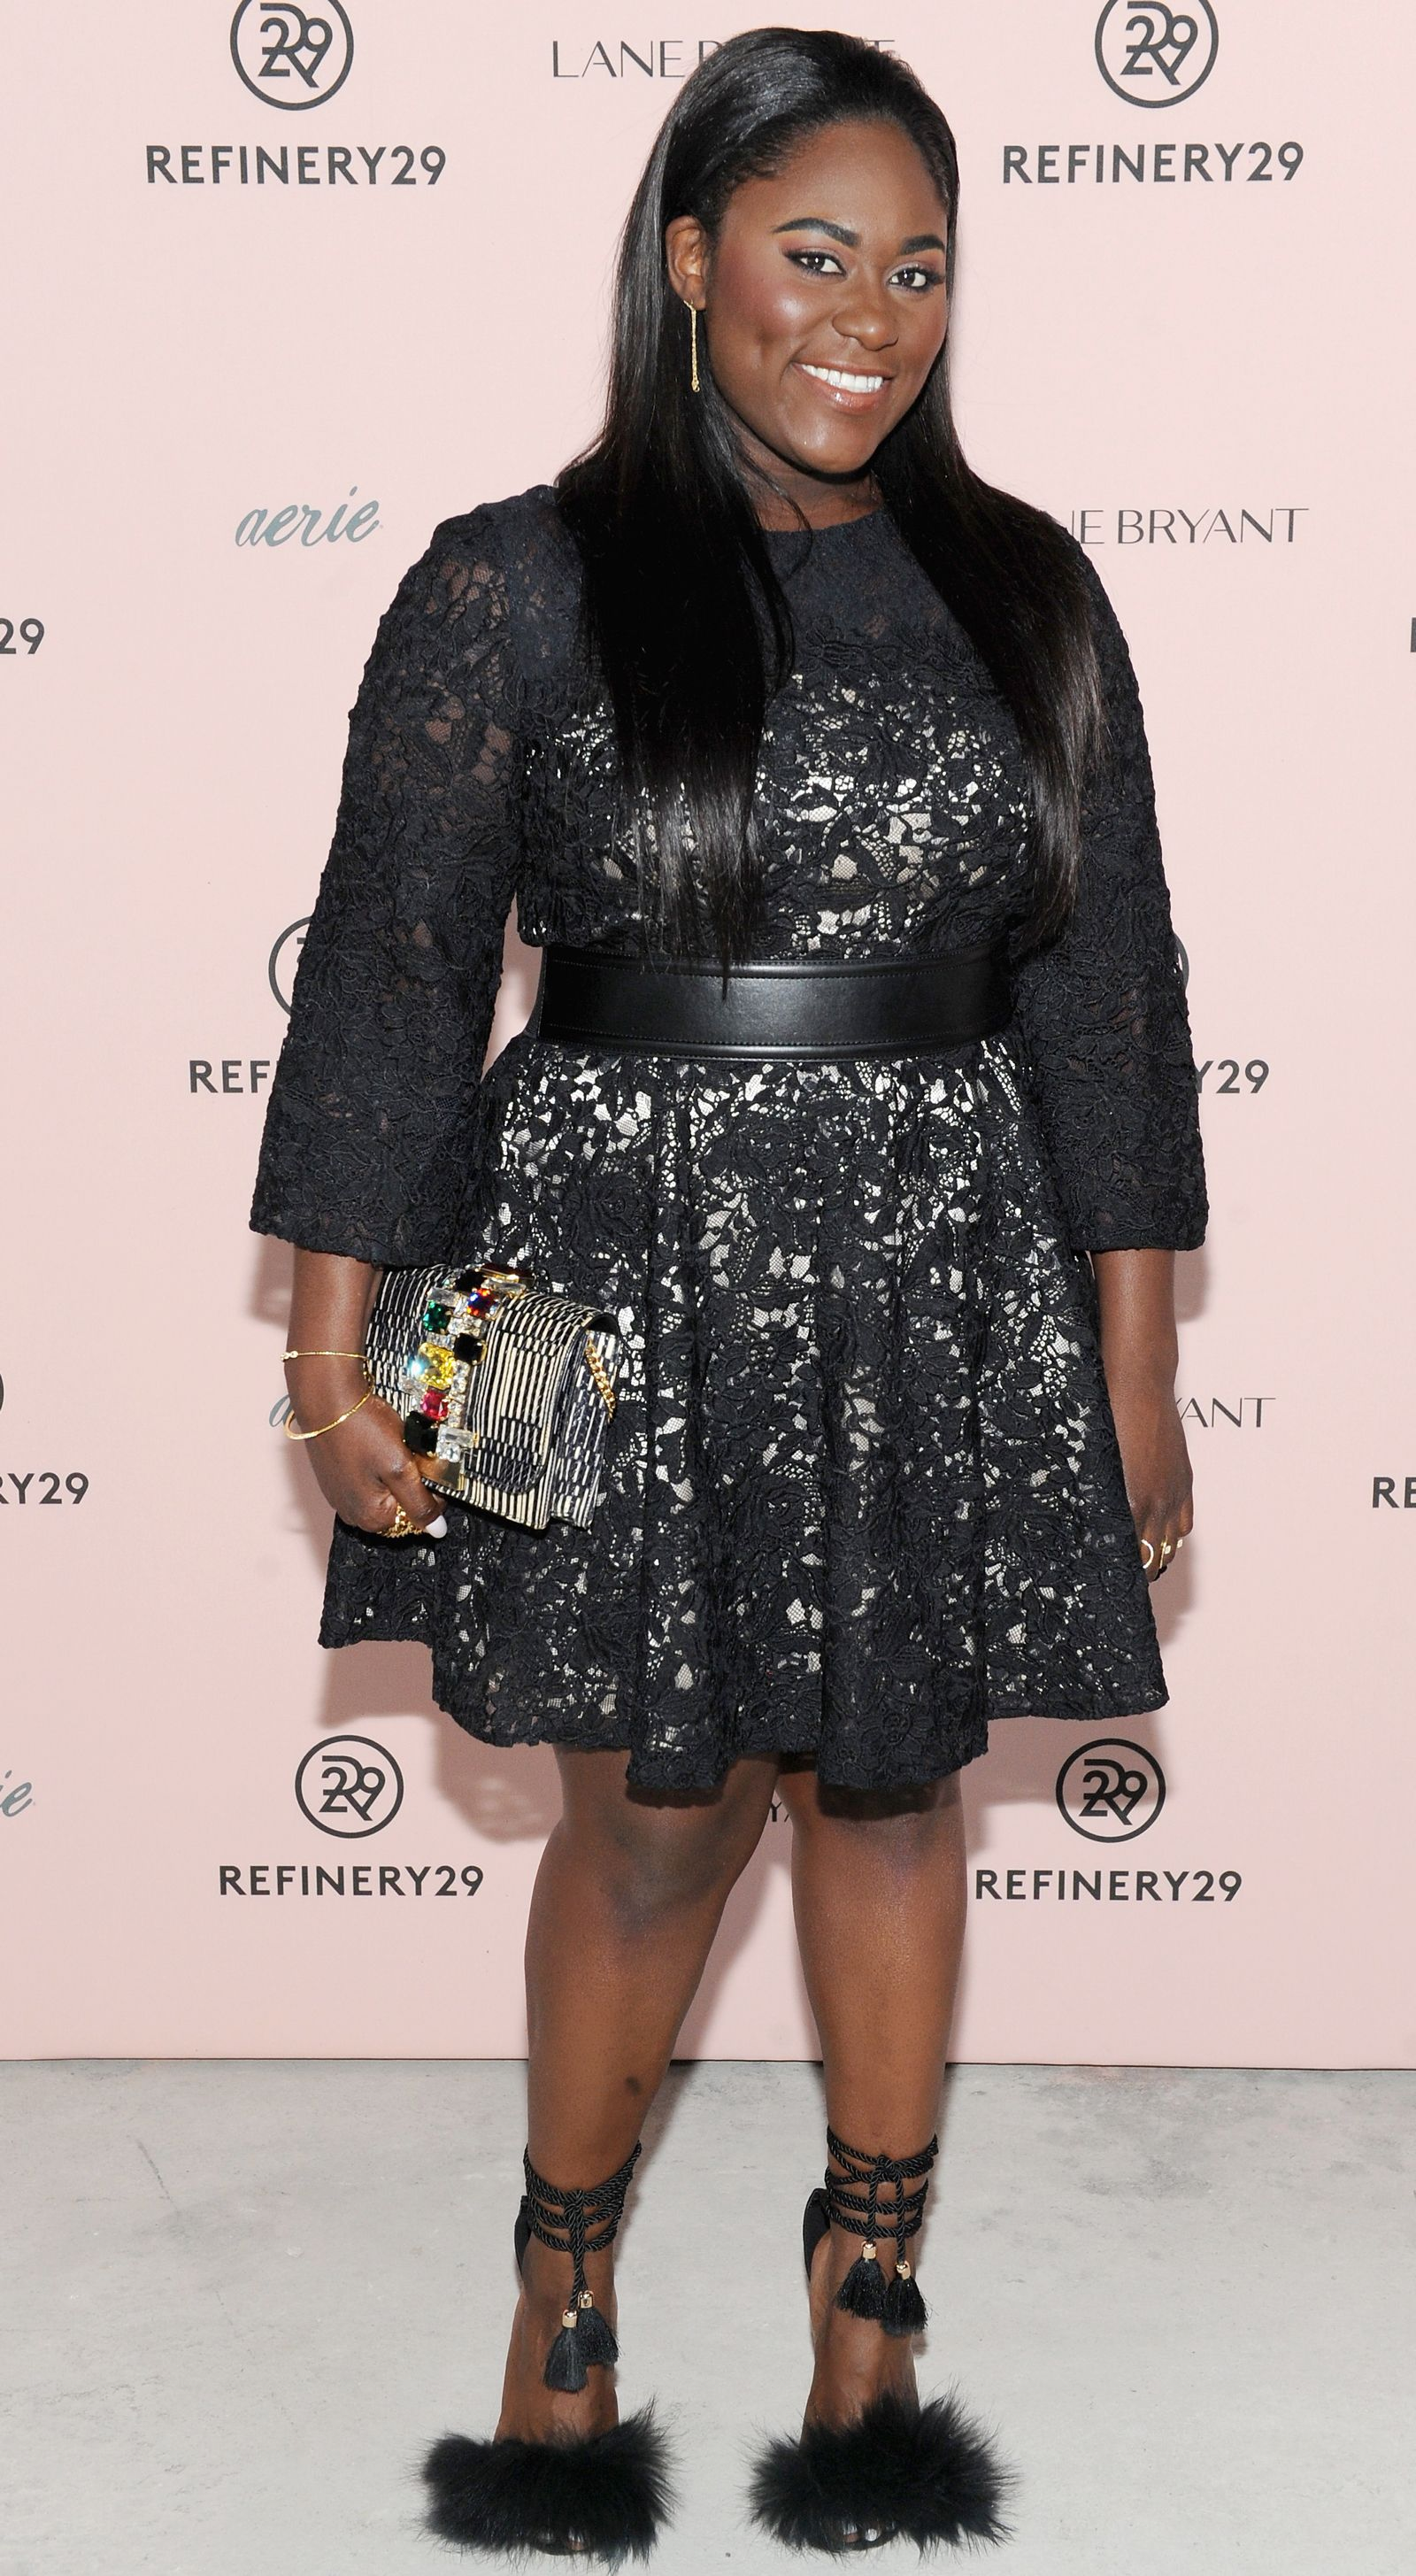 4 Plus-Size Style Lessons to Learn from Danielle Brooks - 3. The Modern Fit-and-Flare from InStyle.com